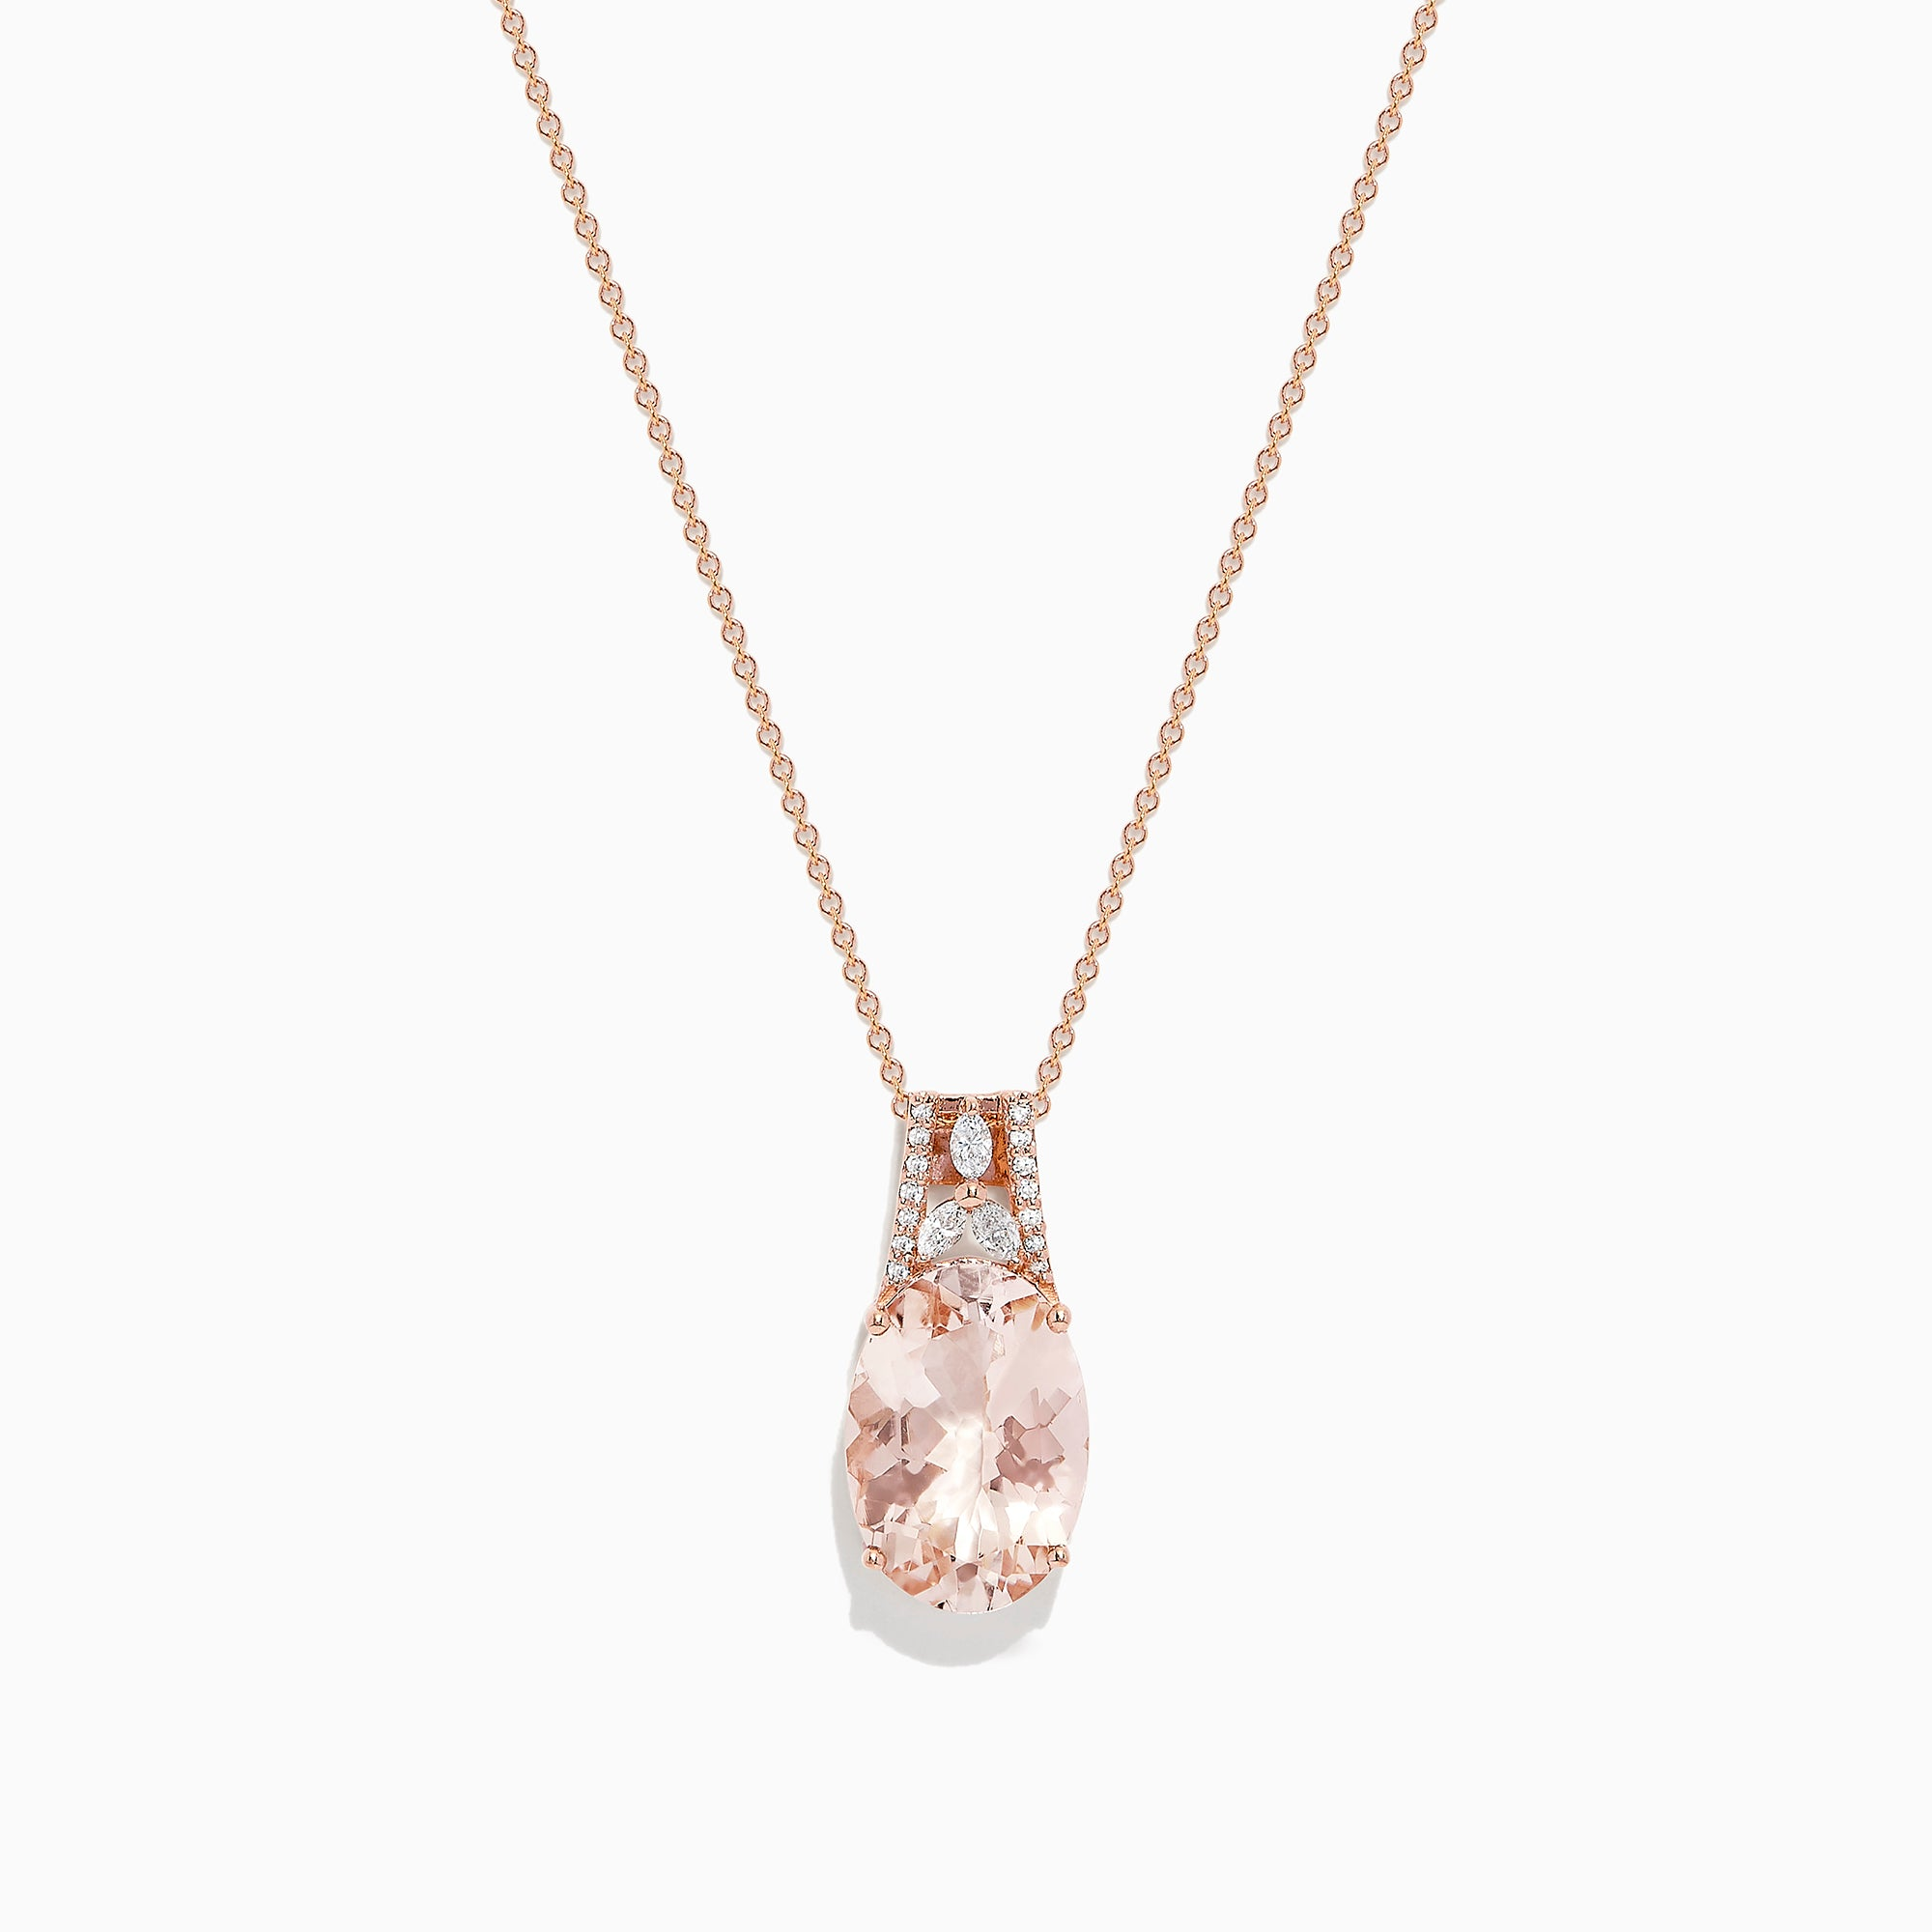 Effy 14K Rose Gold Morganite and Diamond Pendant, 5.55 TCW